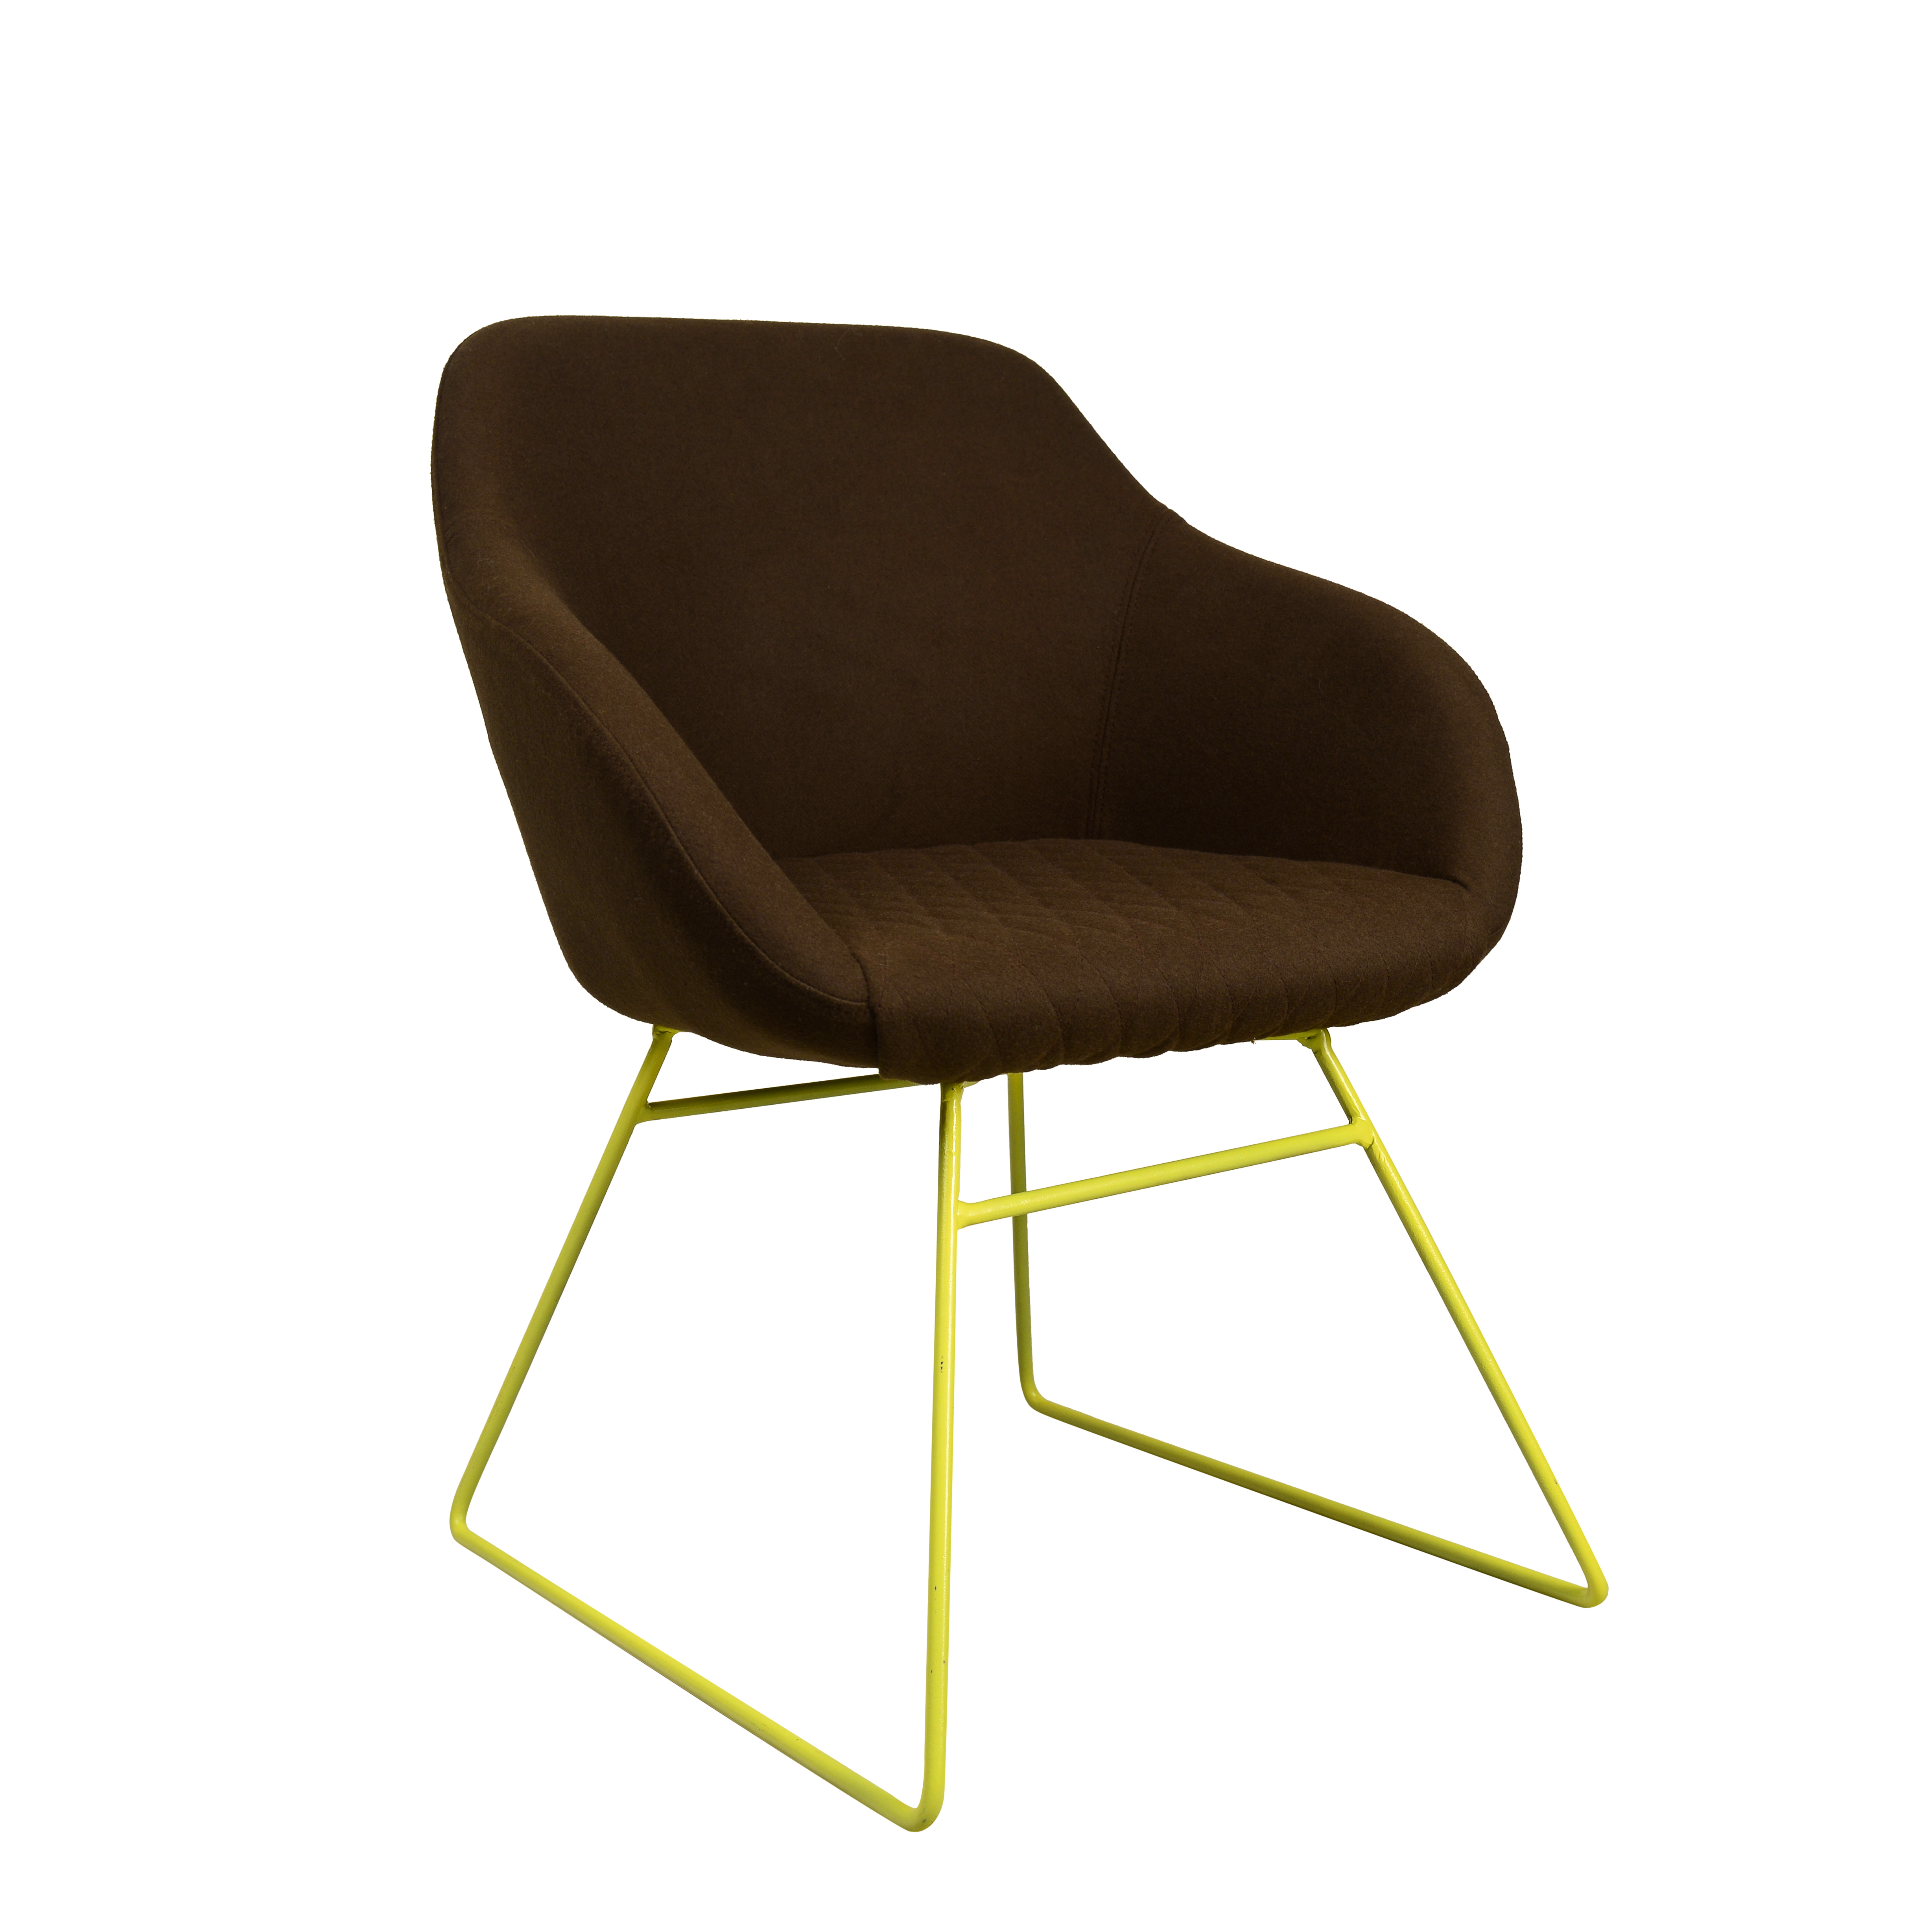 Janette lounge chair